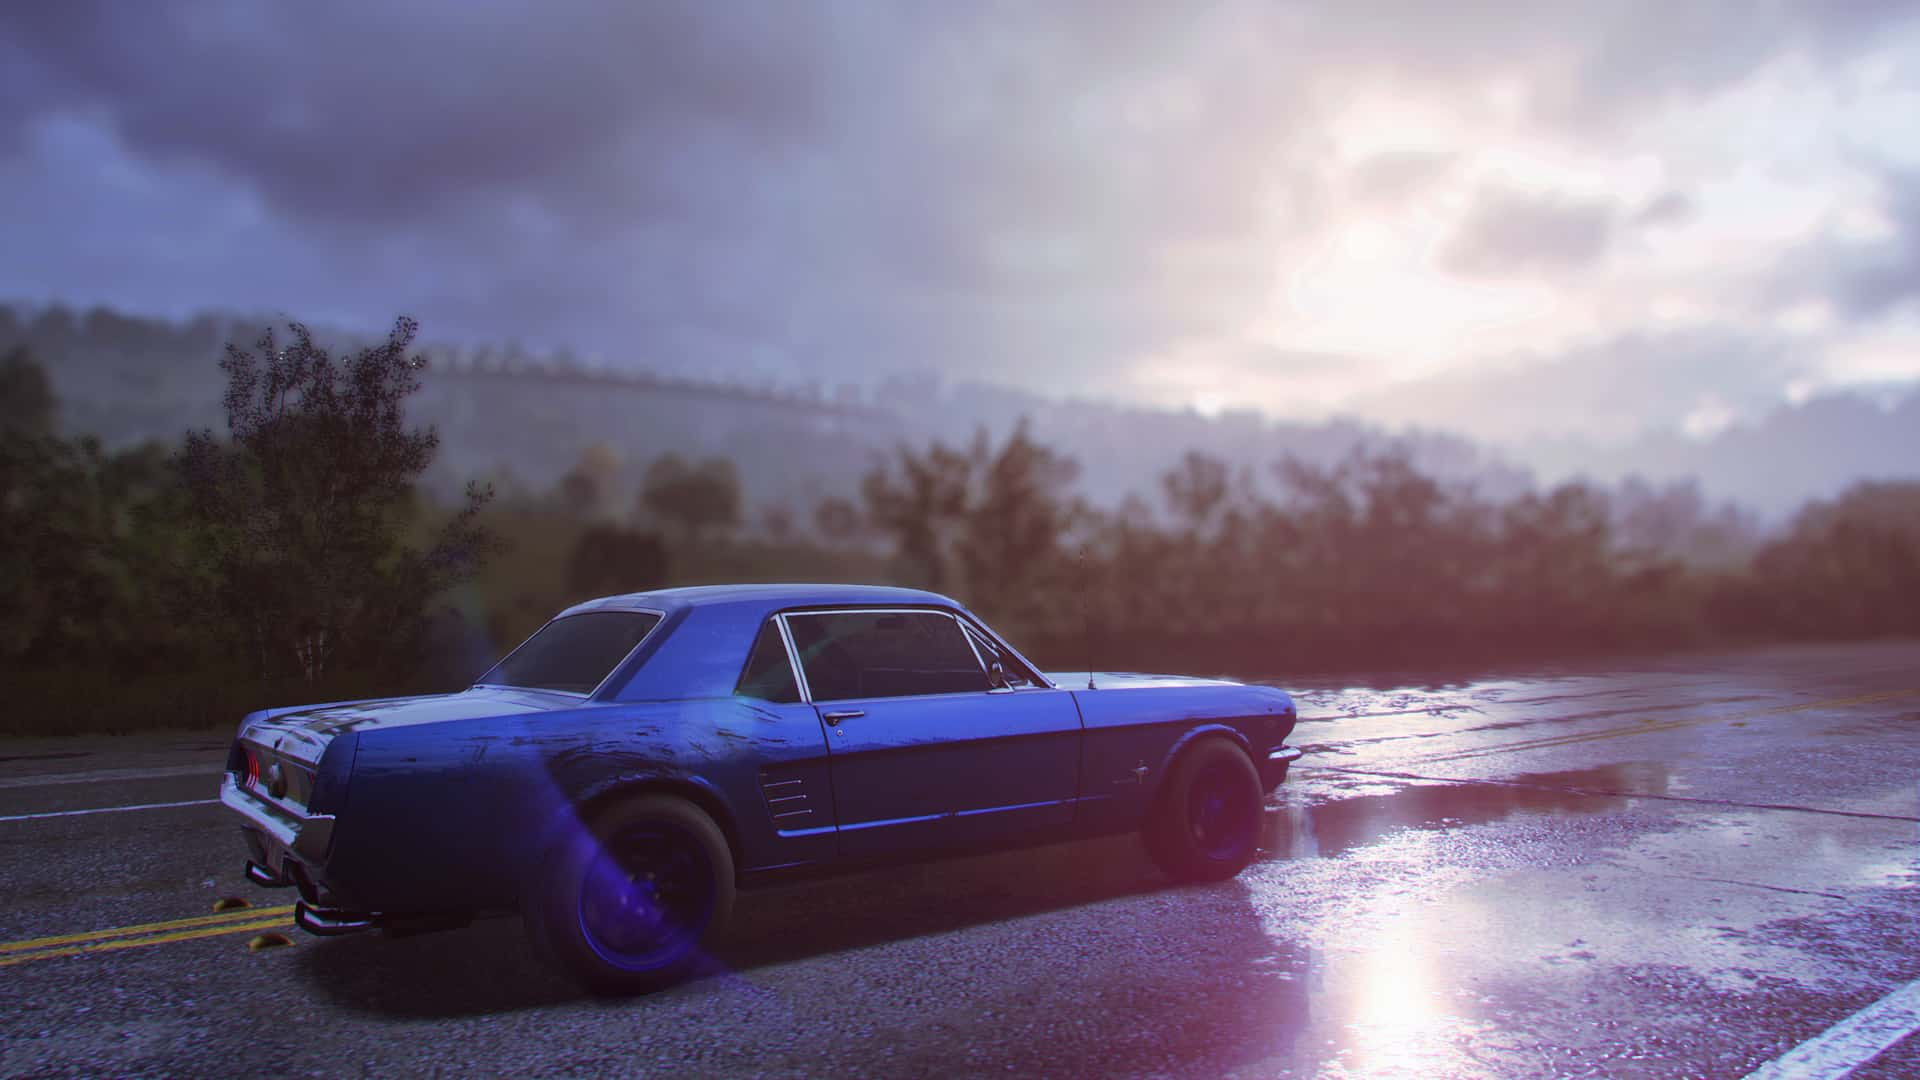 Comparativa de rendimiento de Need for Speed: Heat entre las diferentes consolas 2